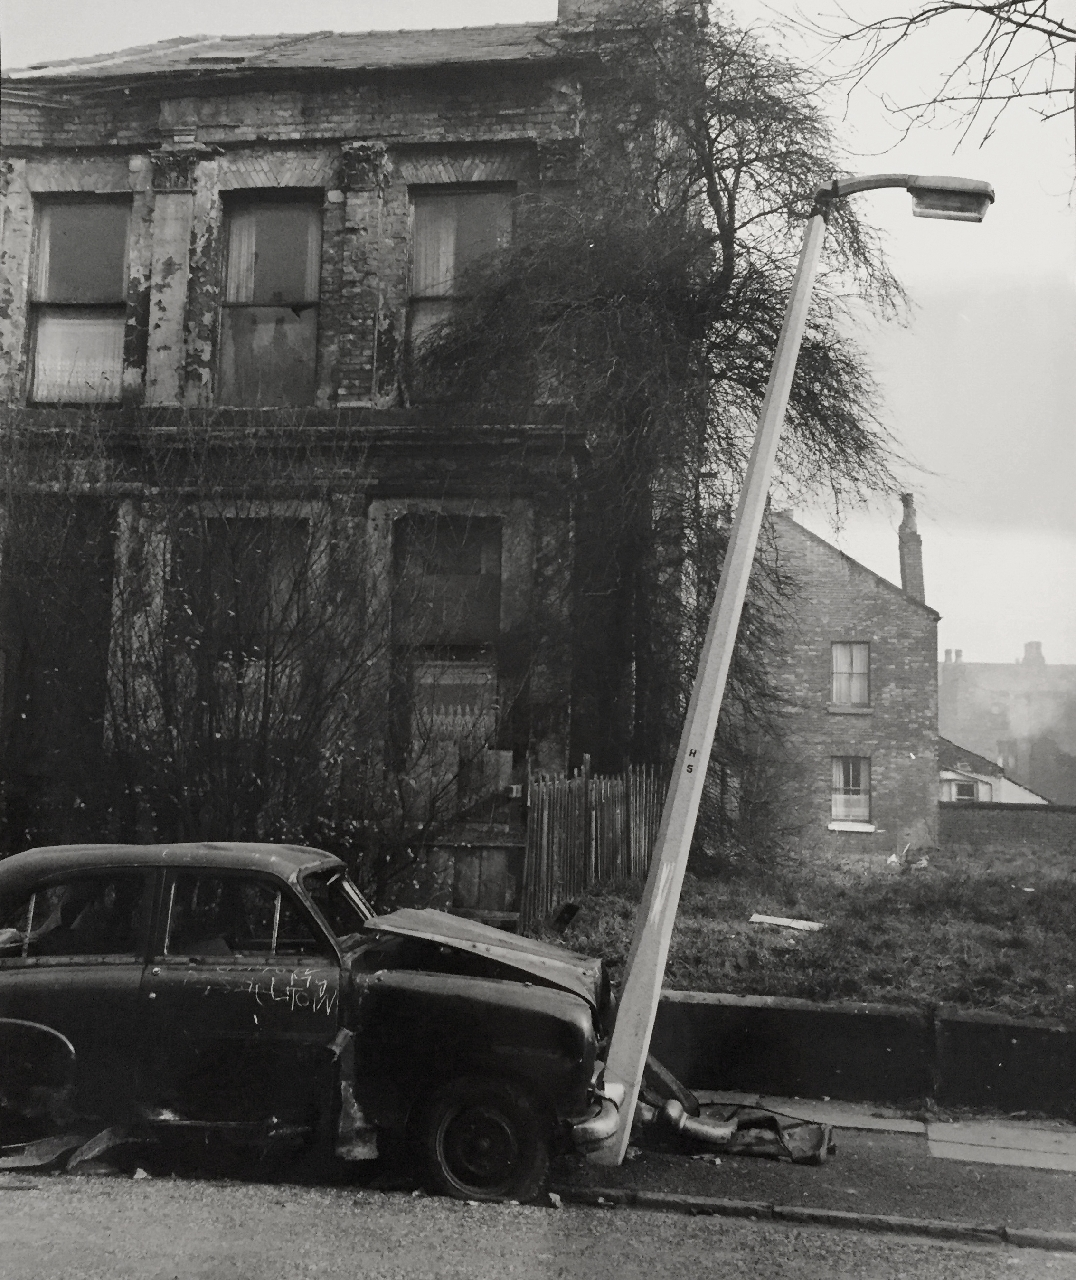 Shirley Baker, Abandoned Car 1961. Courtesy the artist estate